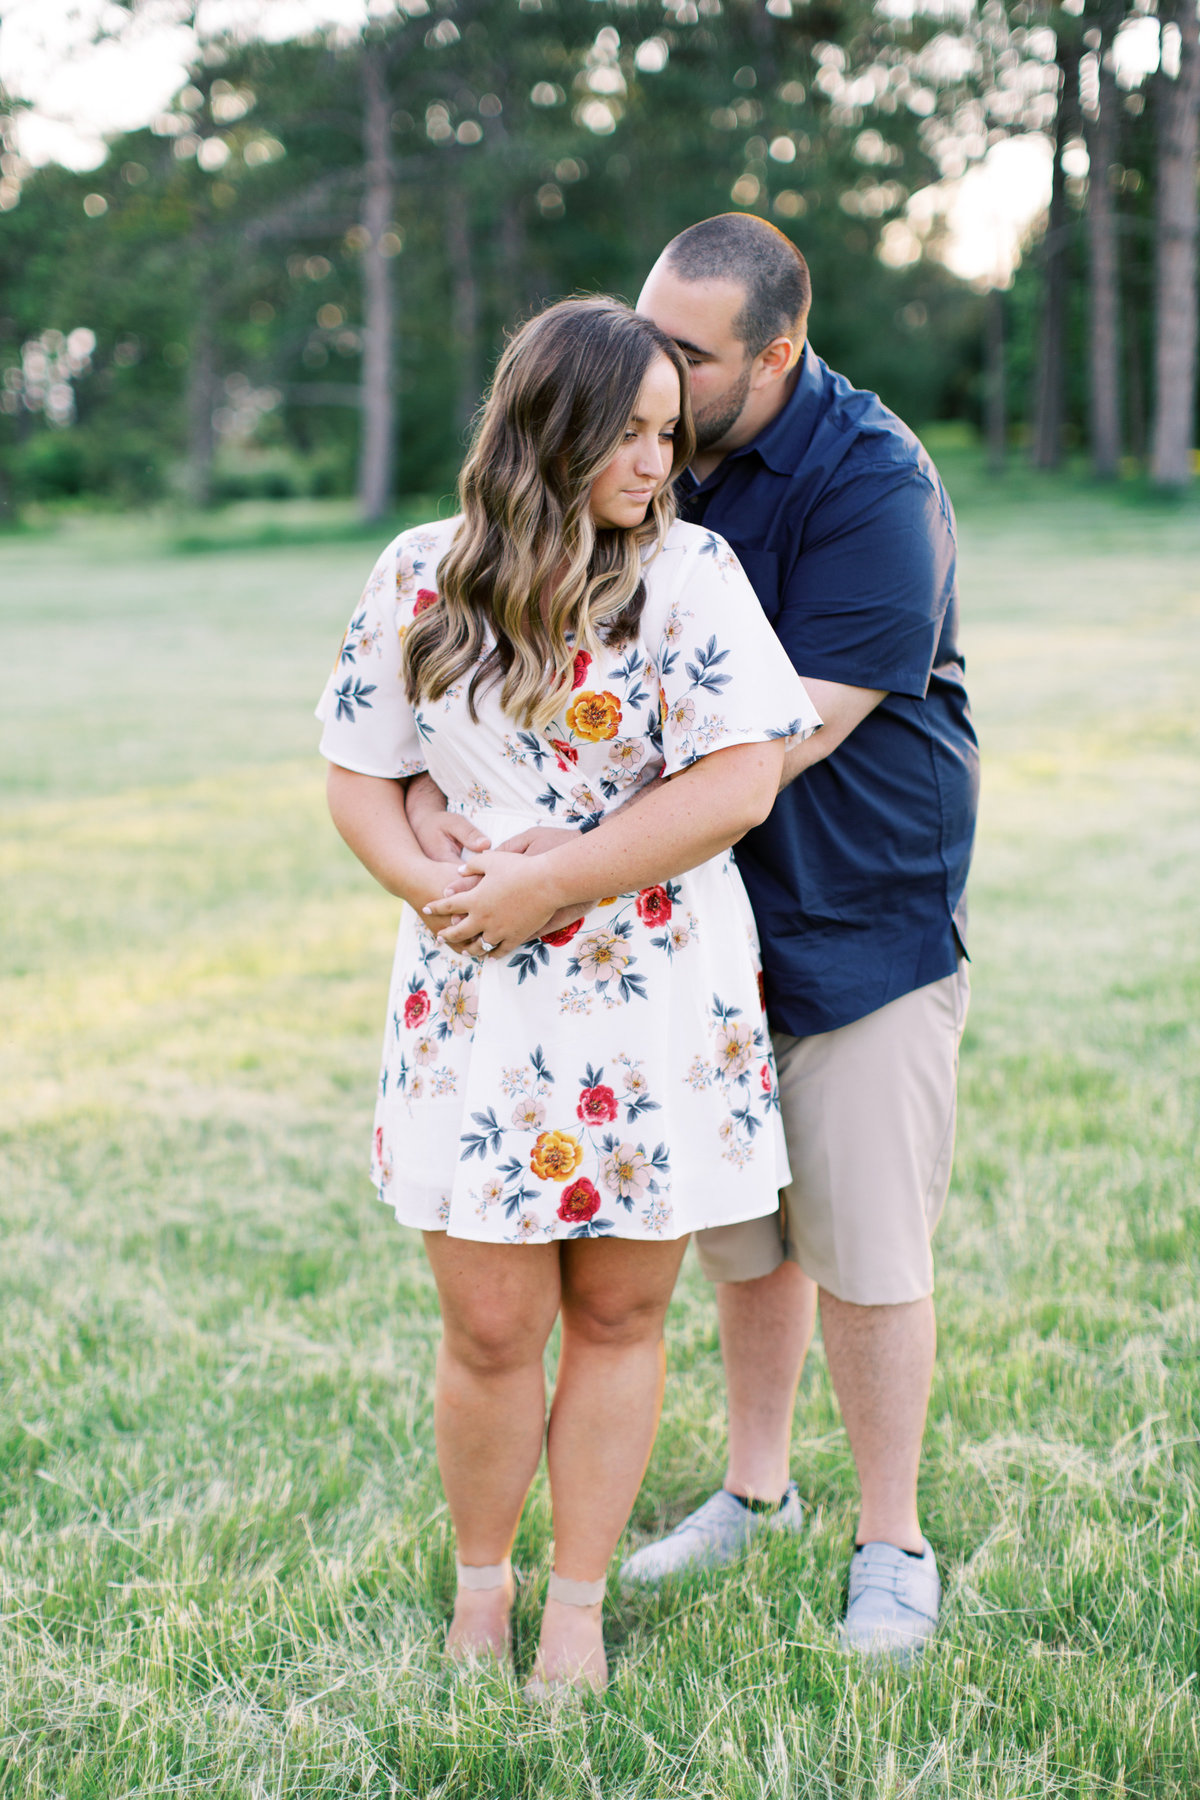 LizAndy_Engagement_June112019_77